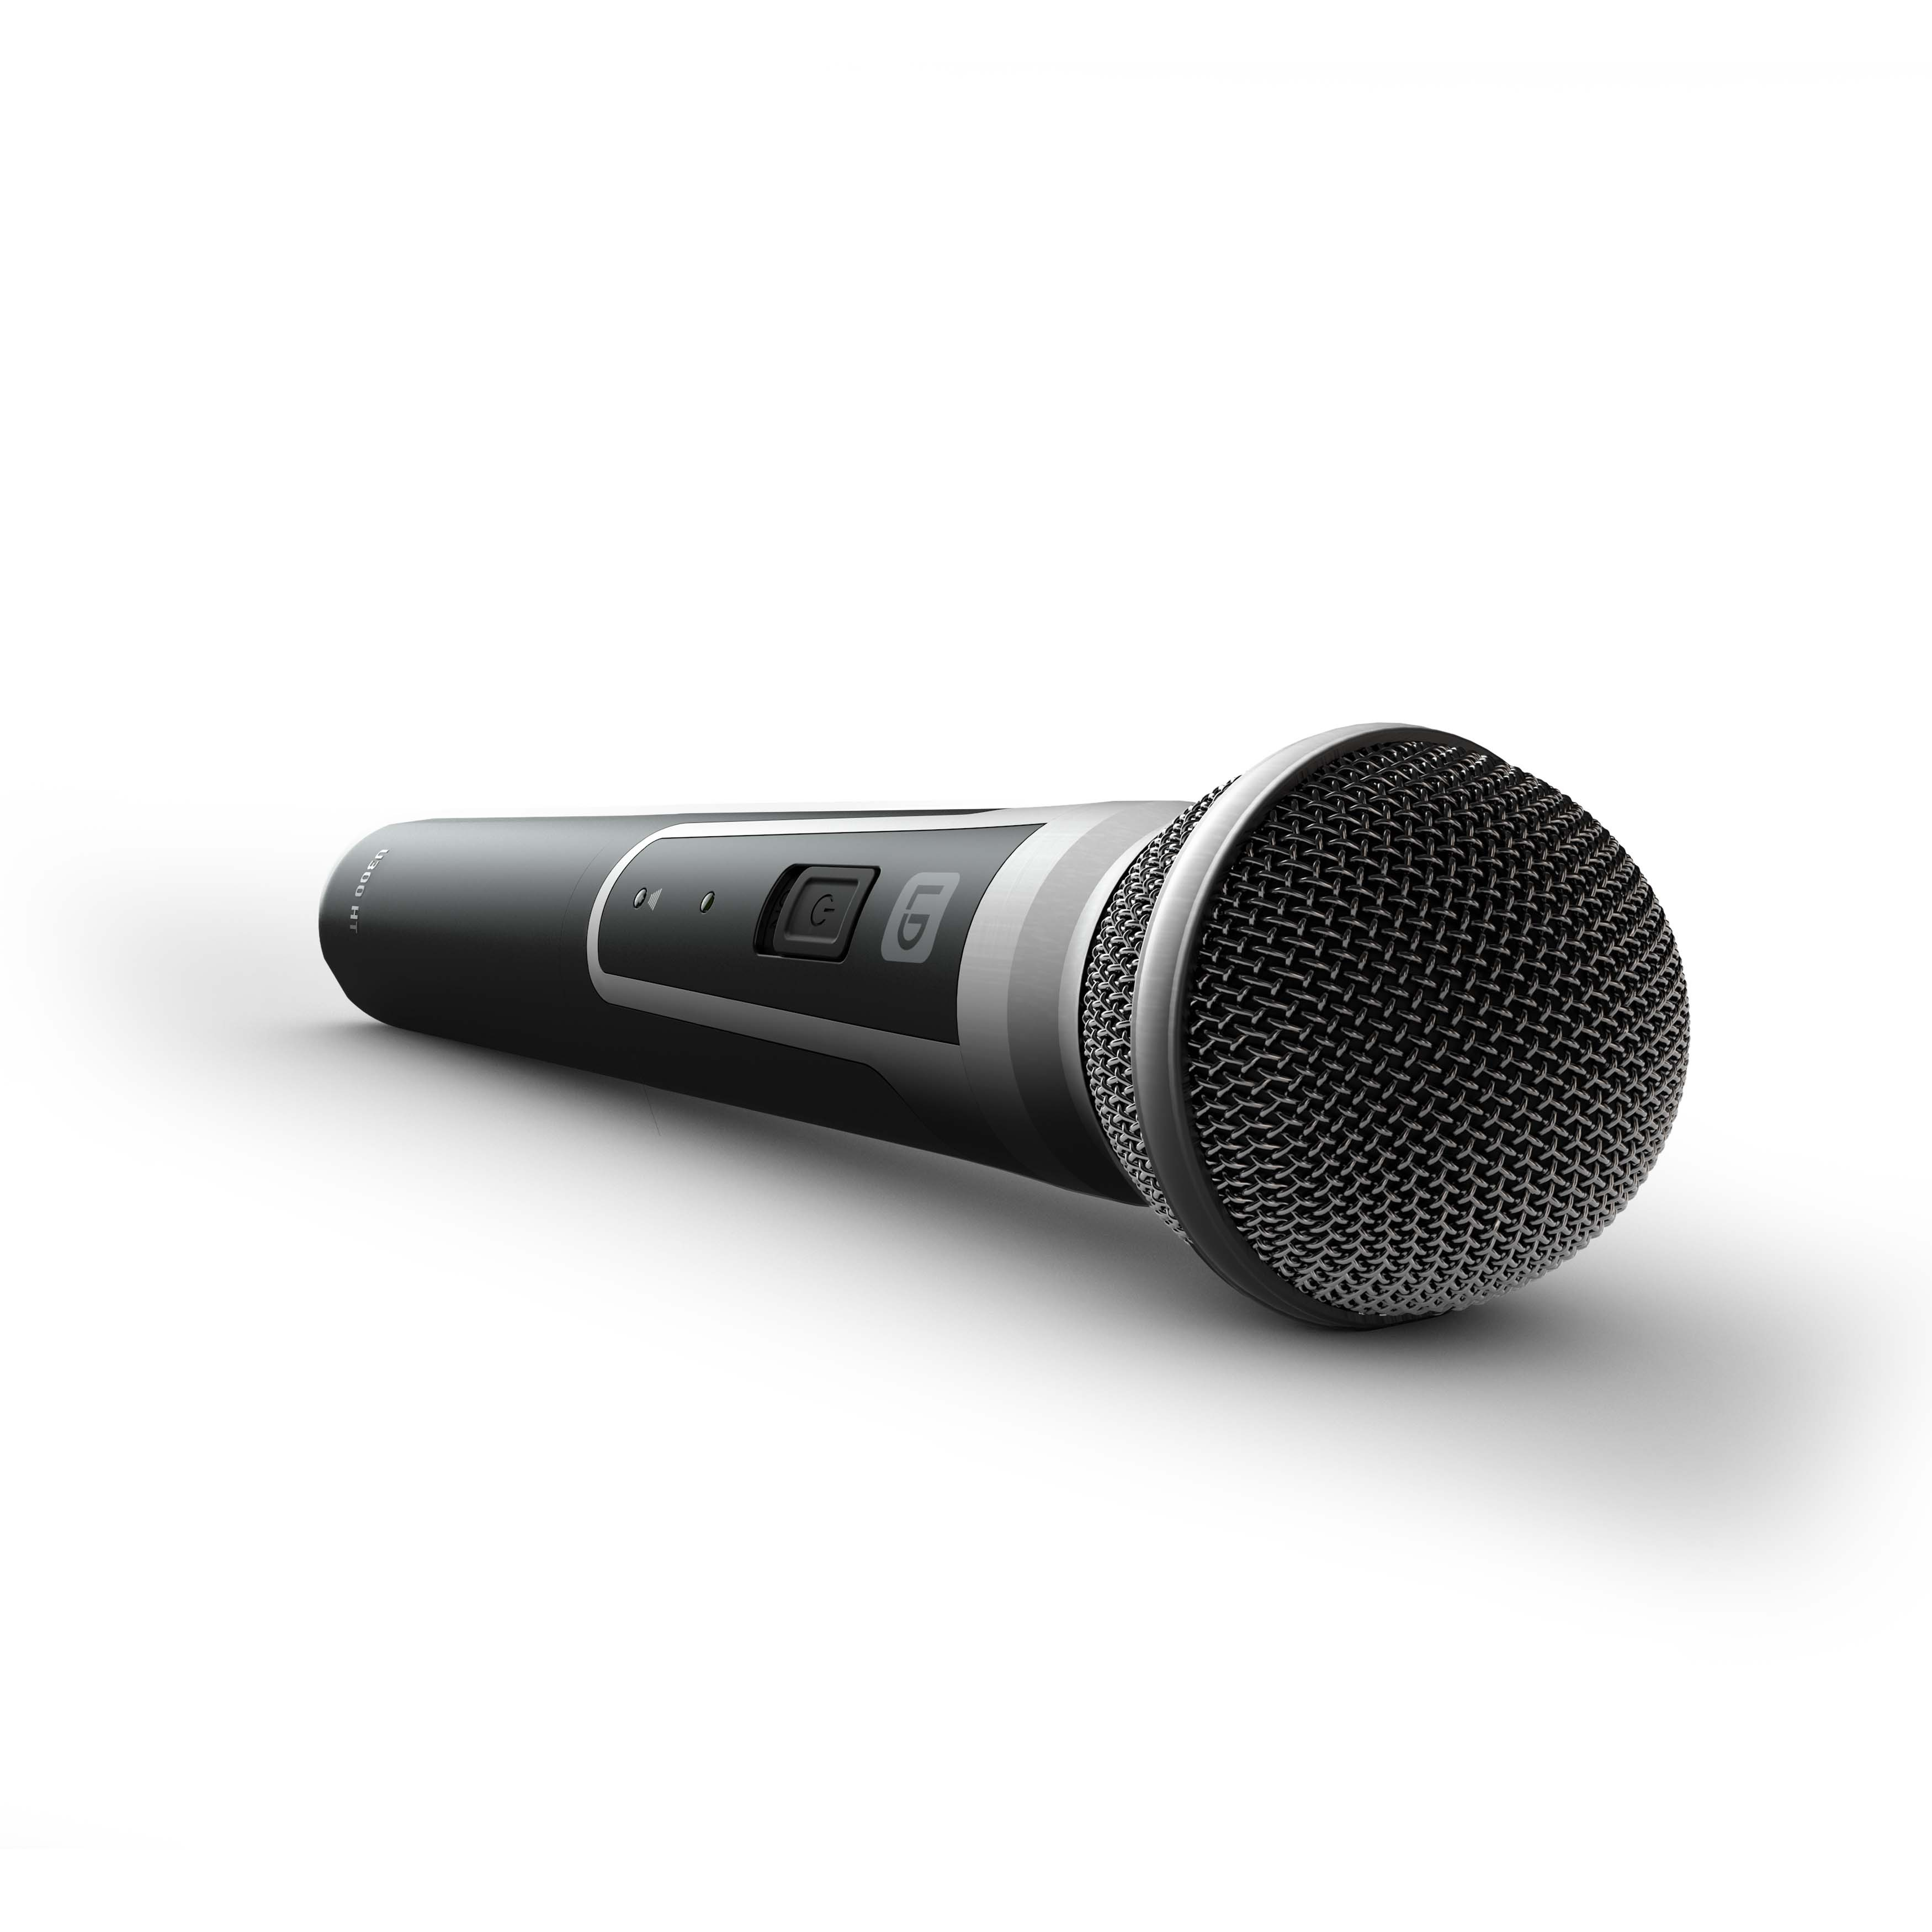 U306 MD Dynamic handheld microphone